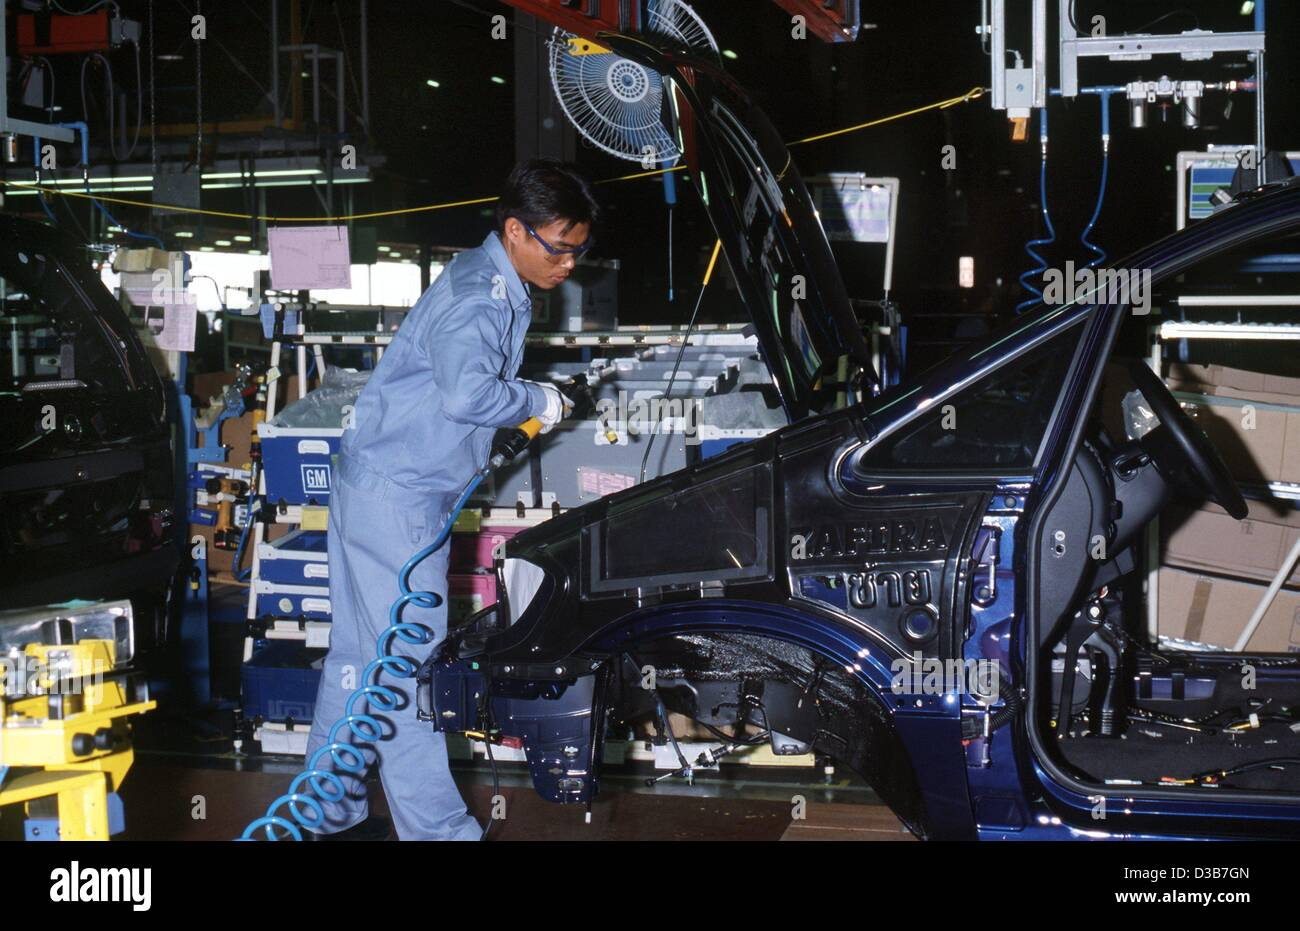 (dpa files) - An employee works on the assembly line in the General Motors car plant in Rayong, Thailand, February - Stock Image